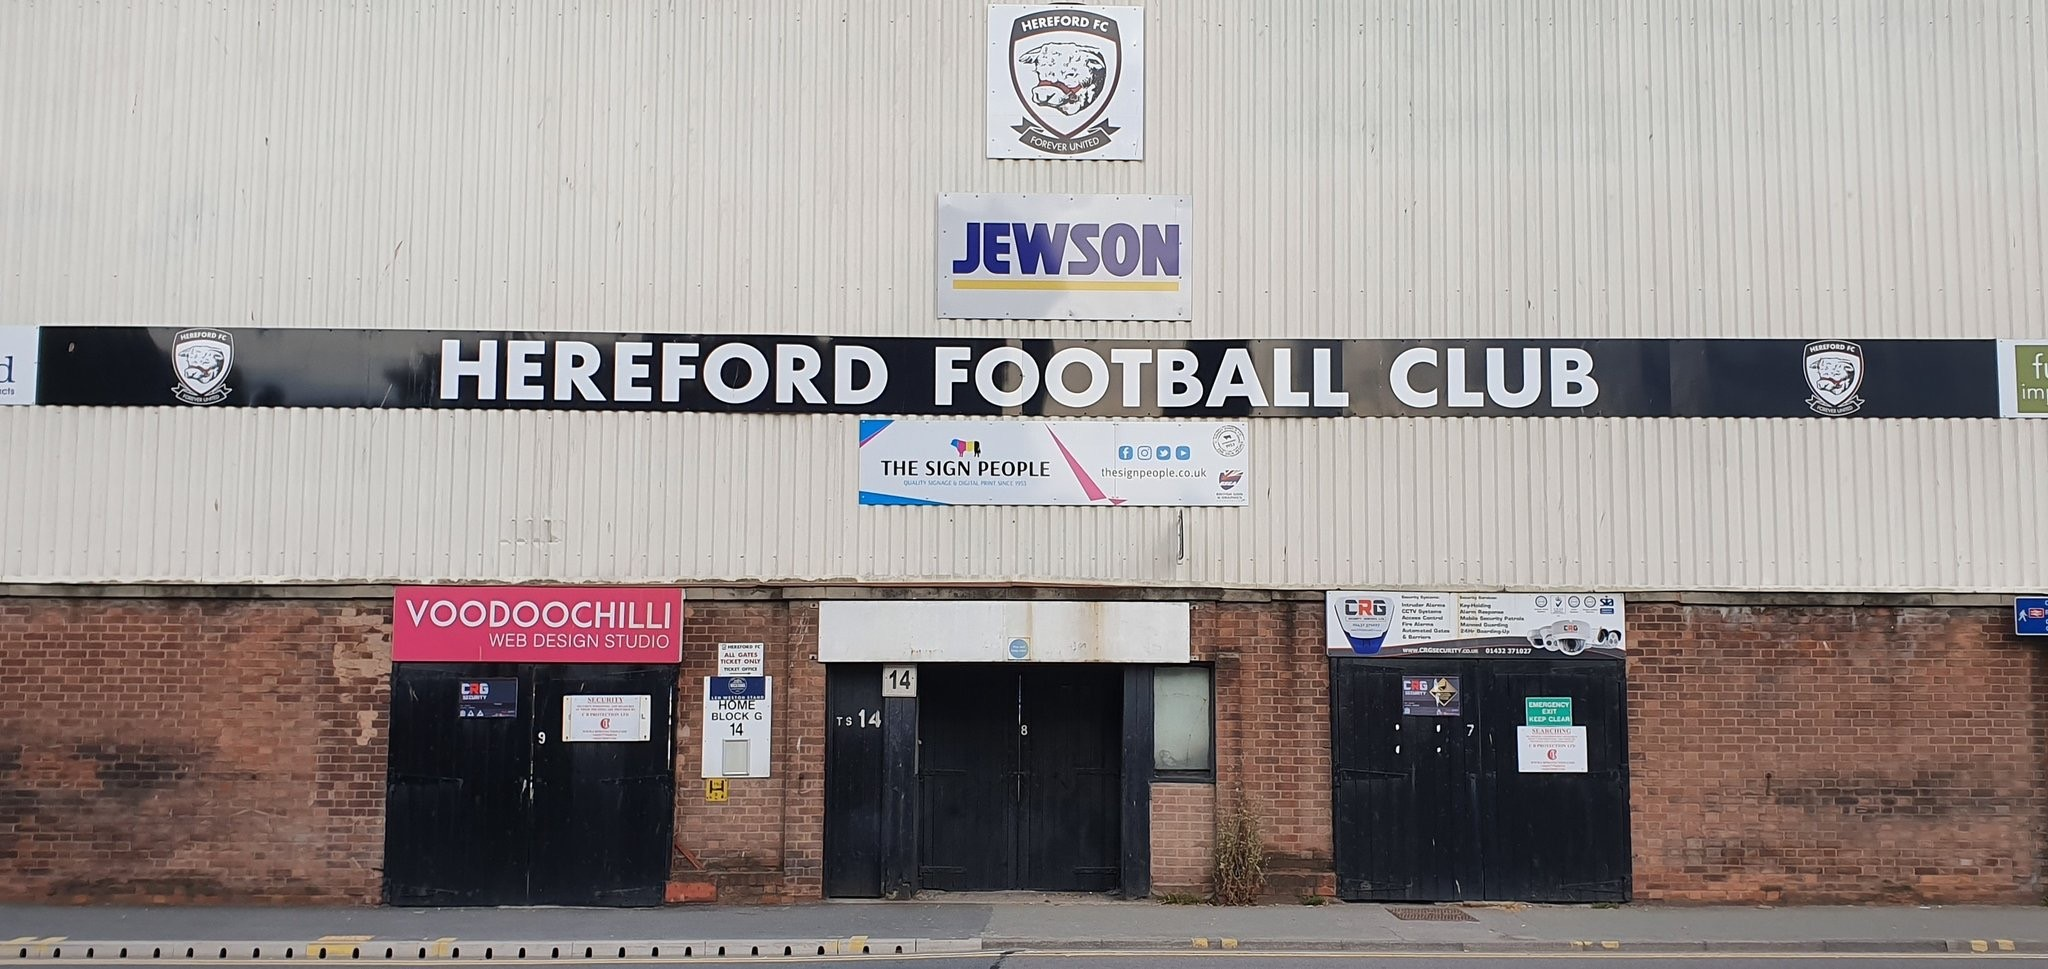 Match Day Guide – Hereford FC